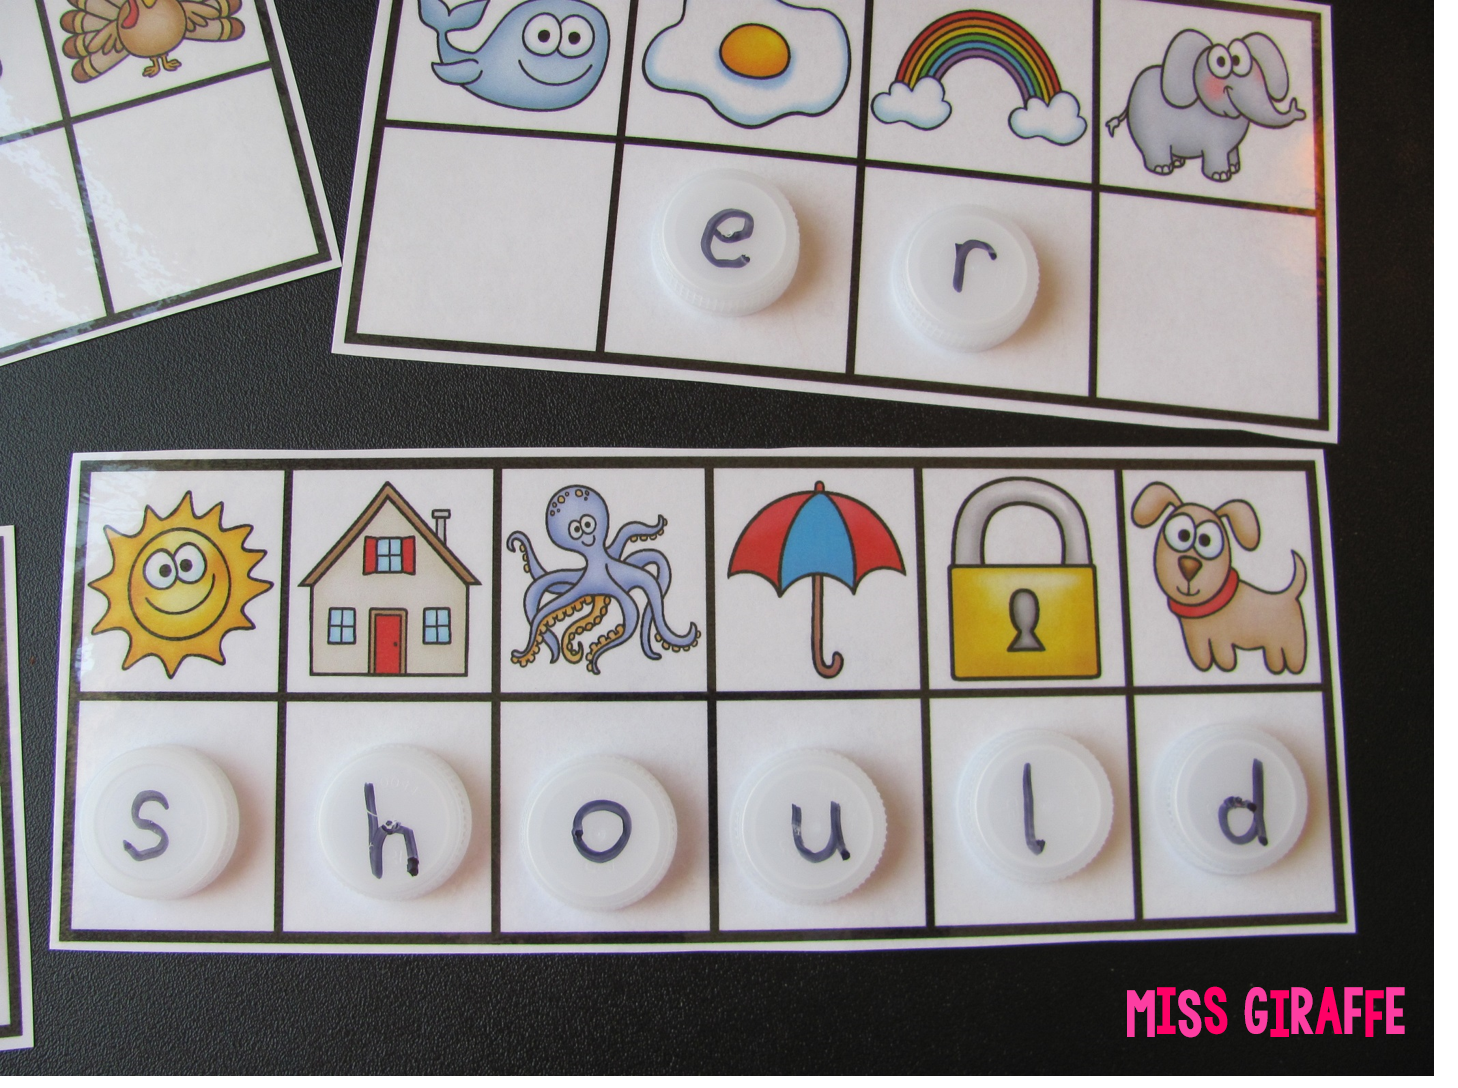 Sight words fun - kids figure out the beginning sounds of each picture to figure out the secret sight word